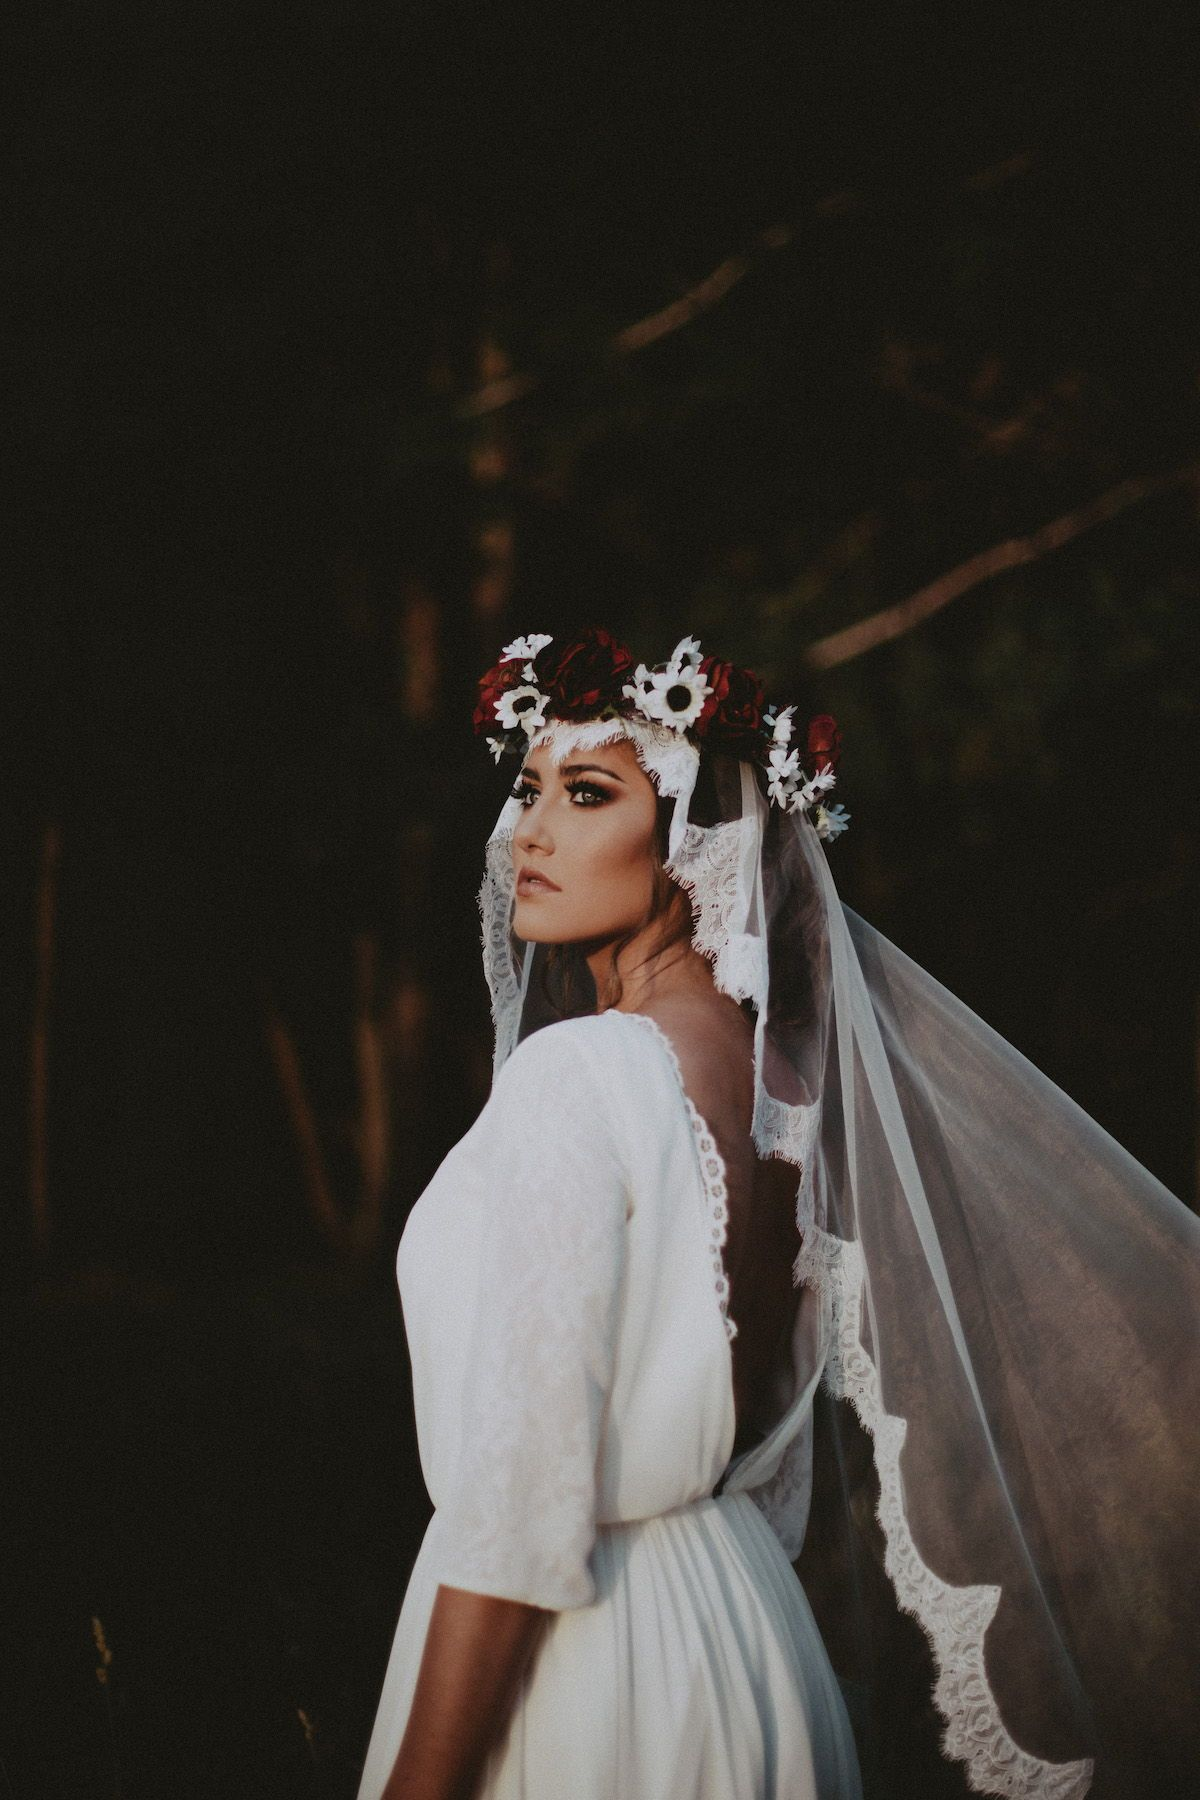 Simply Stunning Looking For Your Dream Wedding Dress In Utah Set Up An Appointment With Bōda Bridal To Make Designer Wedding Gowns Wedding Gowns Wedding